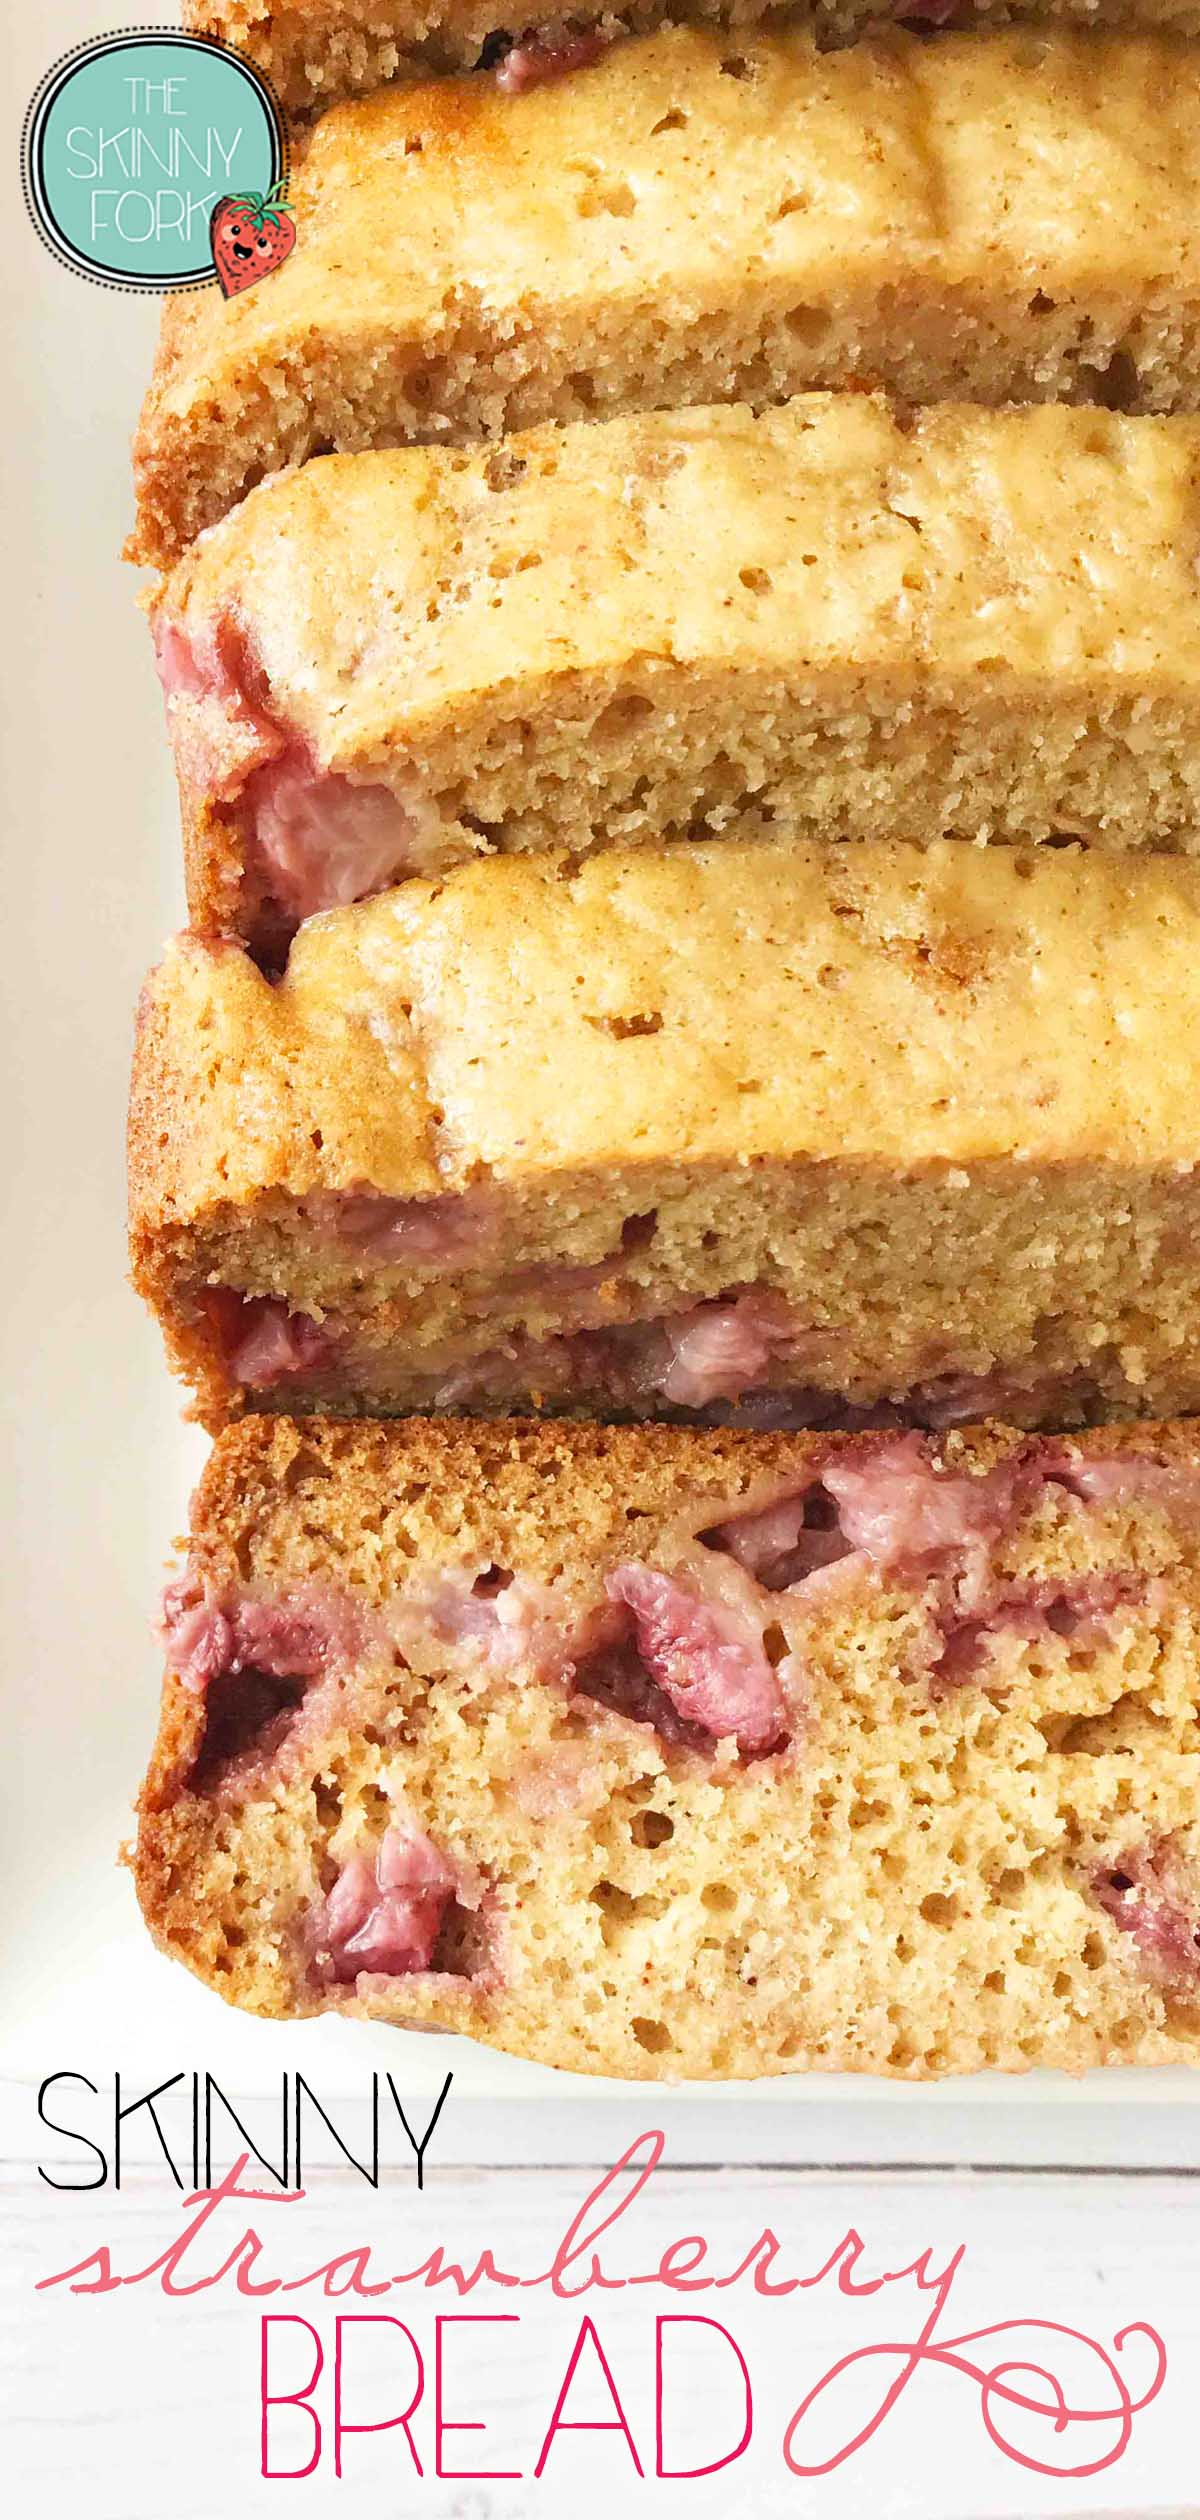 Skinny Strawberry Bread